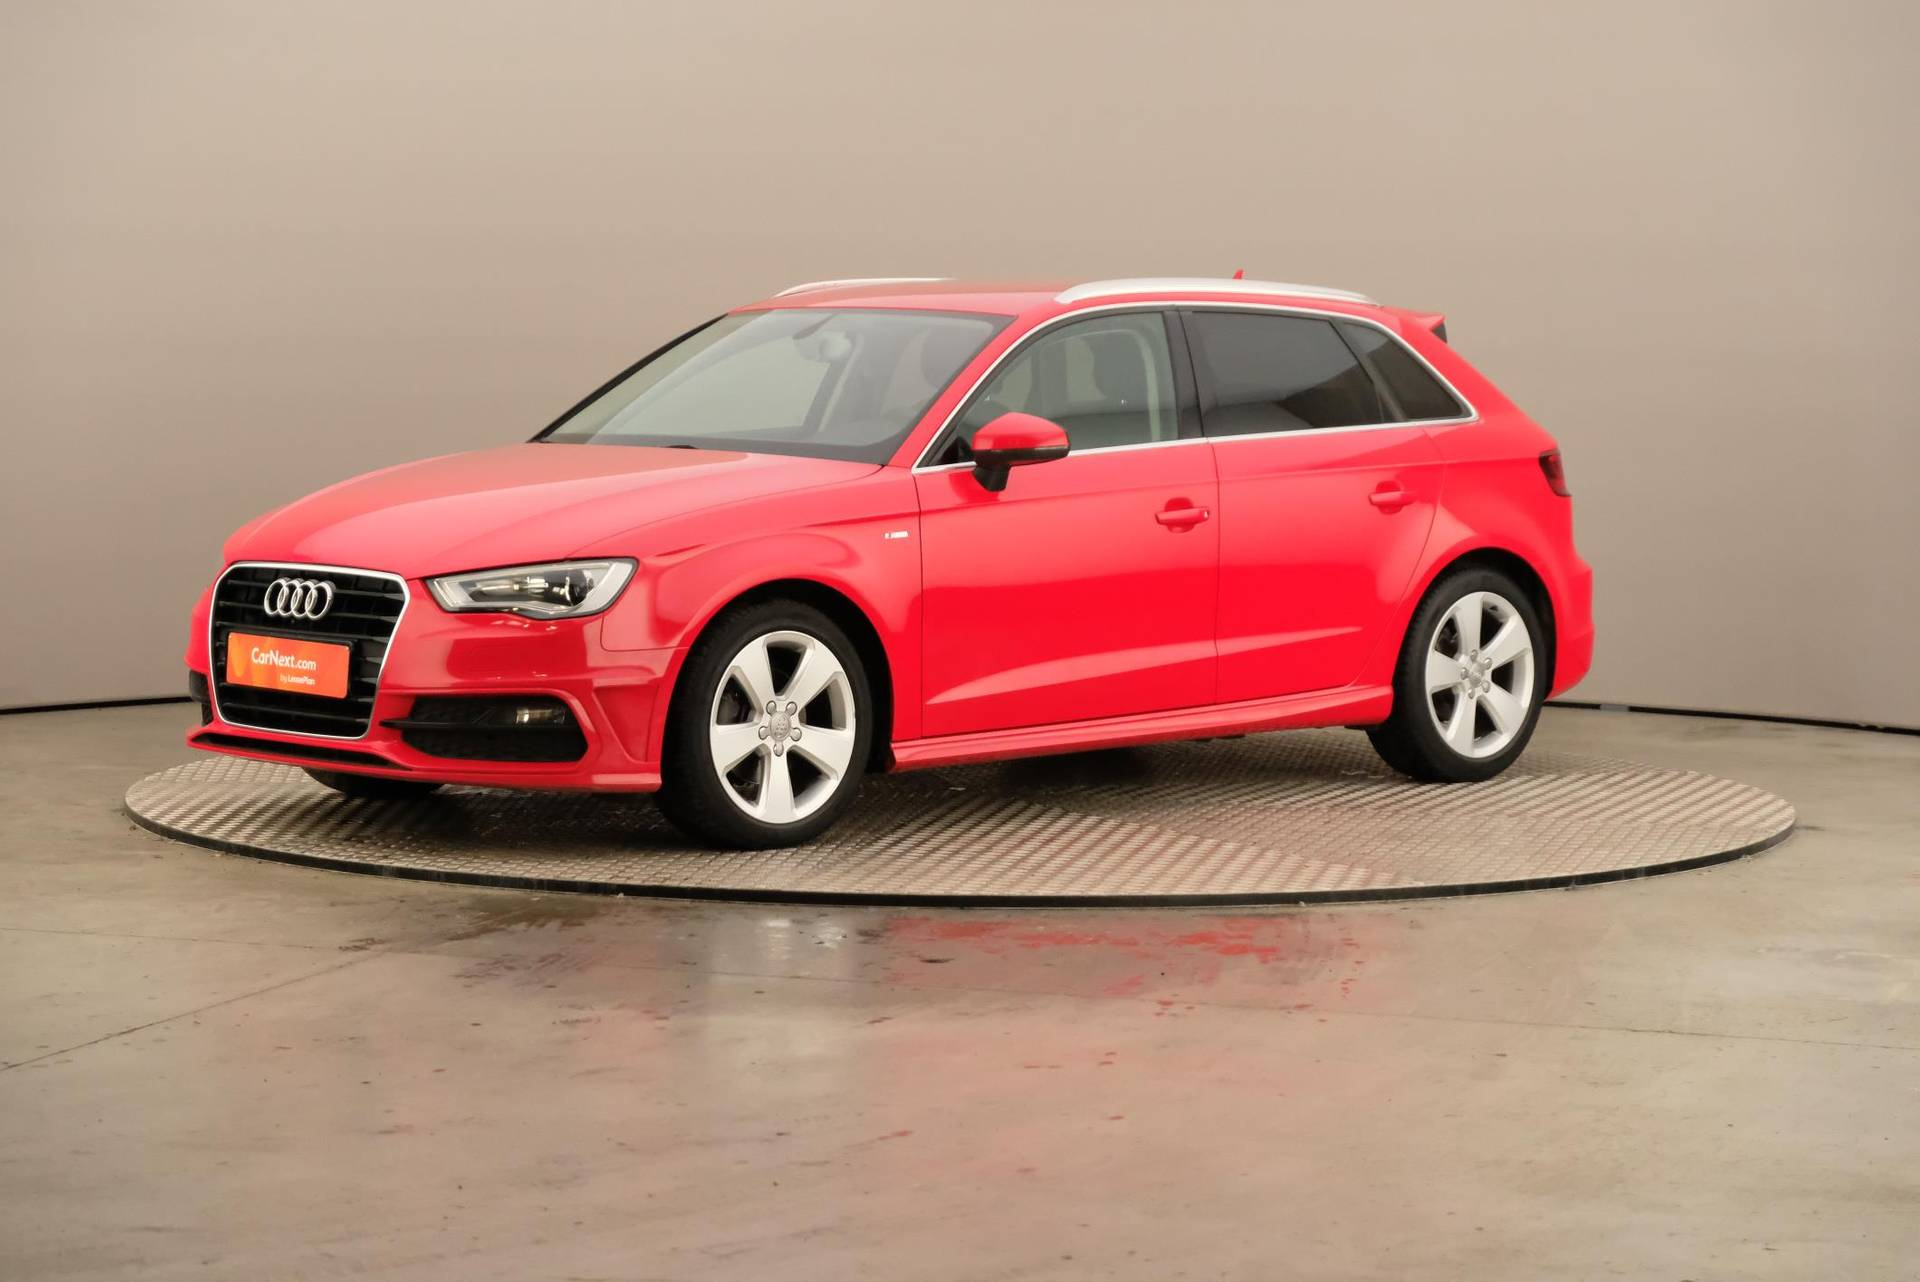 Audi A3 1.6 TDi Ambition PACK SPORT DESIGN XENON GPS PDC CRUISE CONTROL, 360-image0